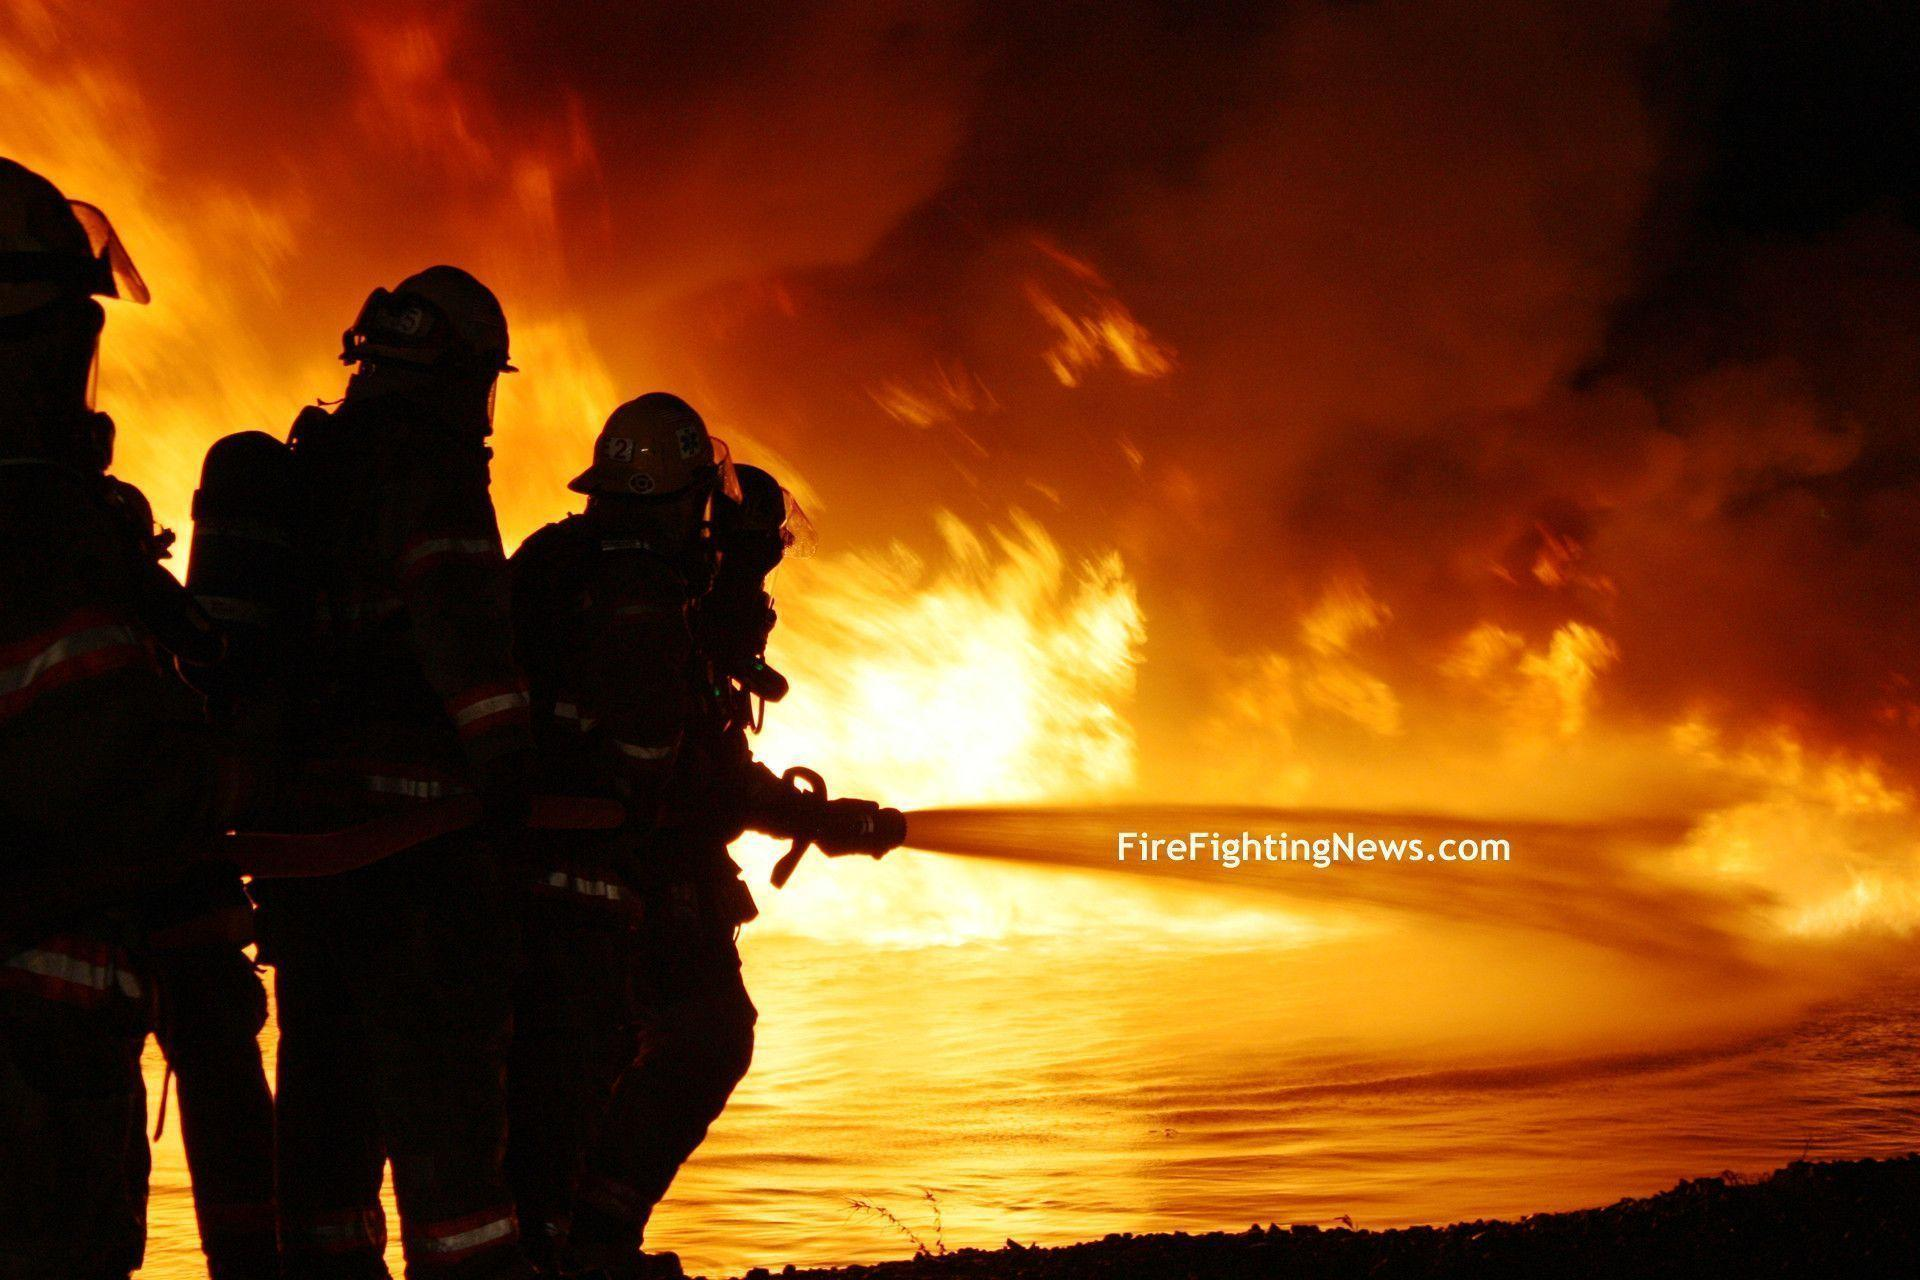 Firefighter Wallpapers Free Download Car Pictures